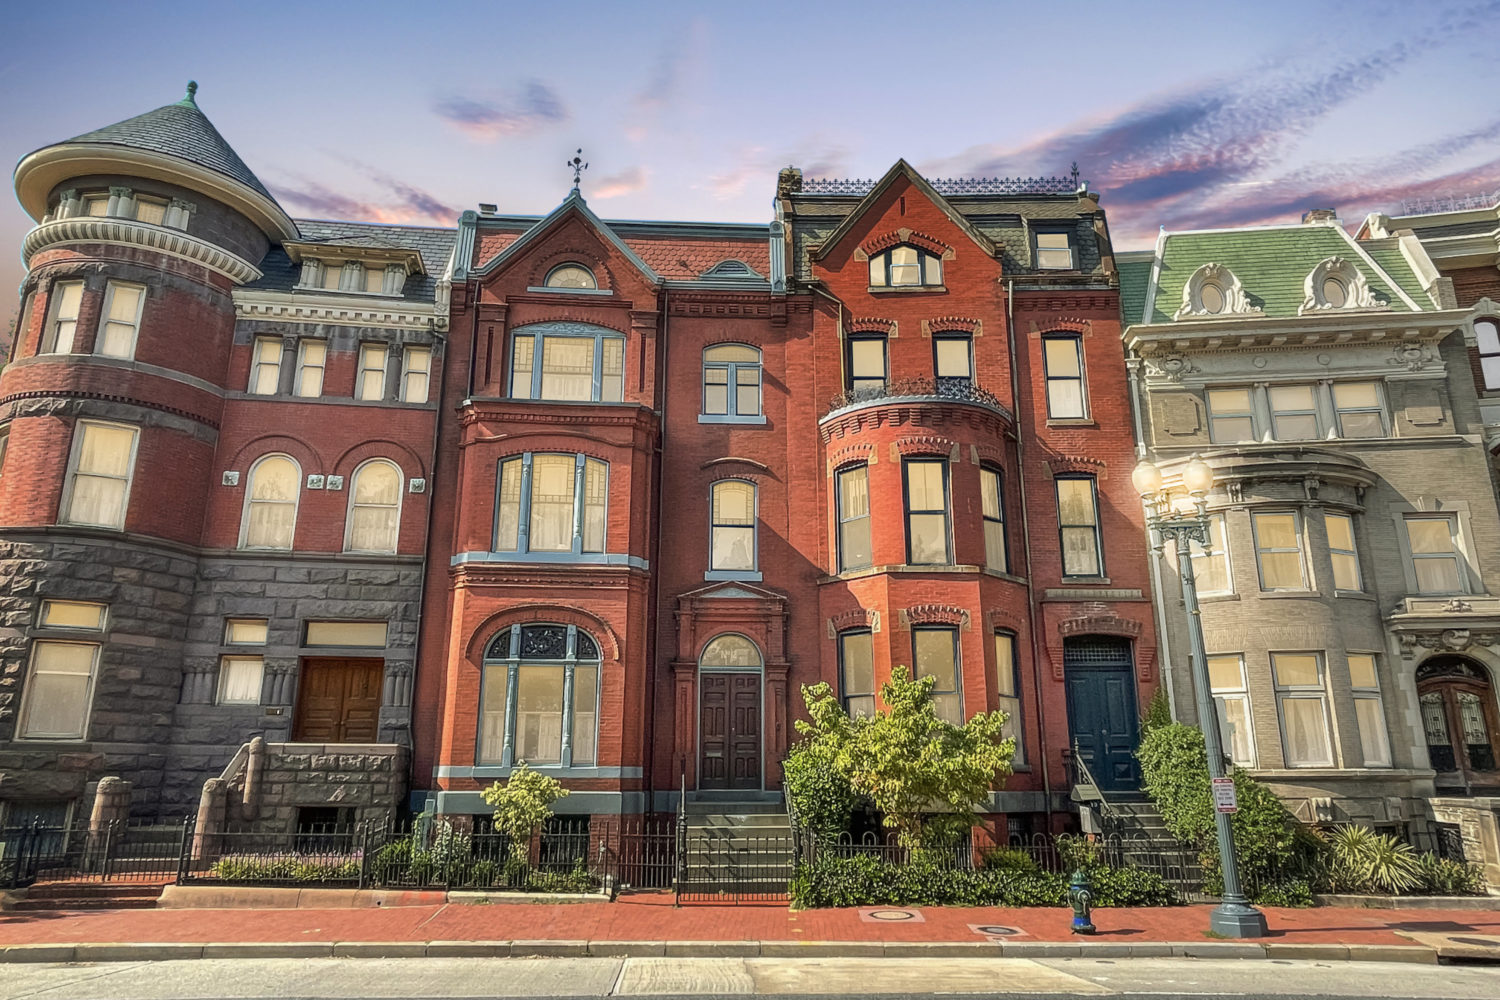 Discover One of the Few Remaining Intact Historical Mansions on Logan Circle